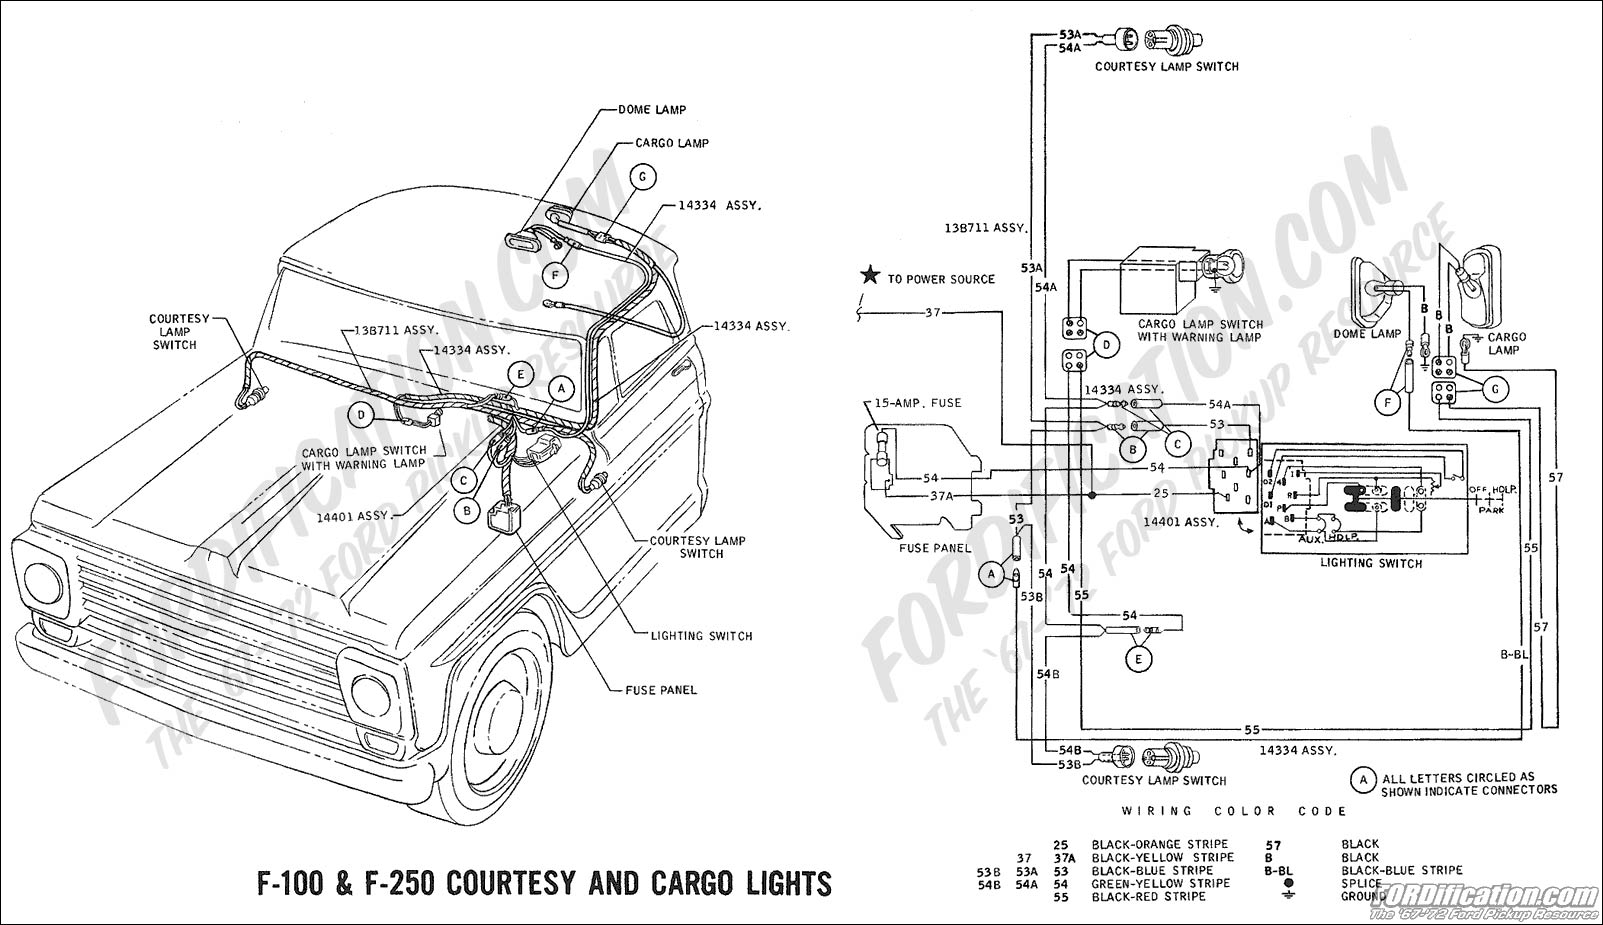 2004 ford excursion f 250 f 350 f 450 f 550 wiring diagram